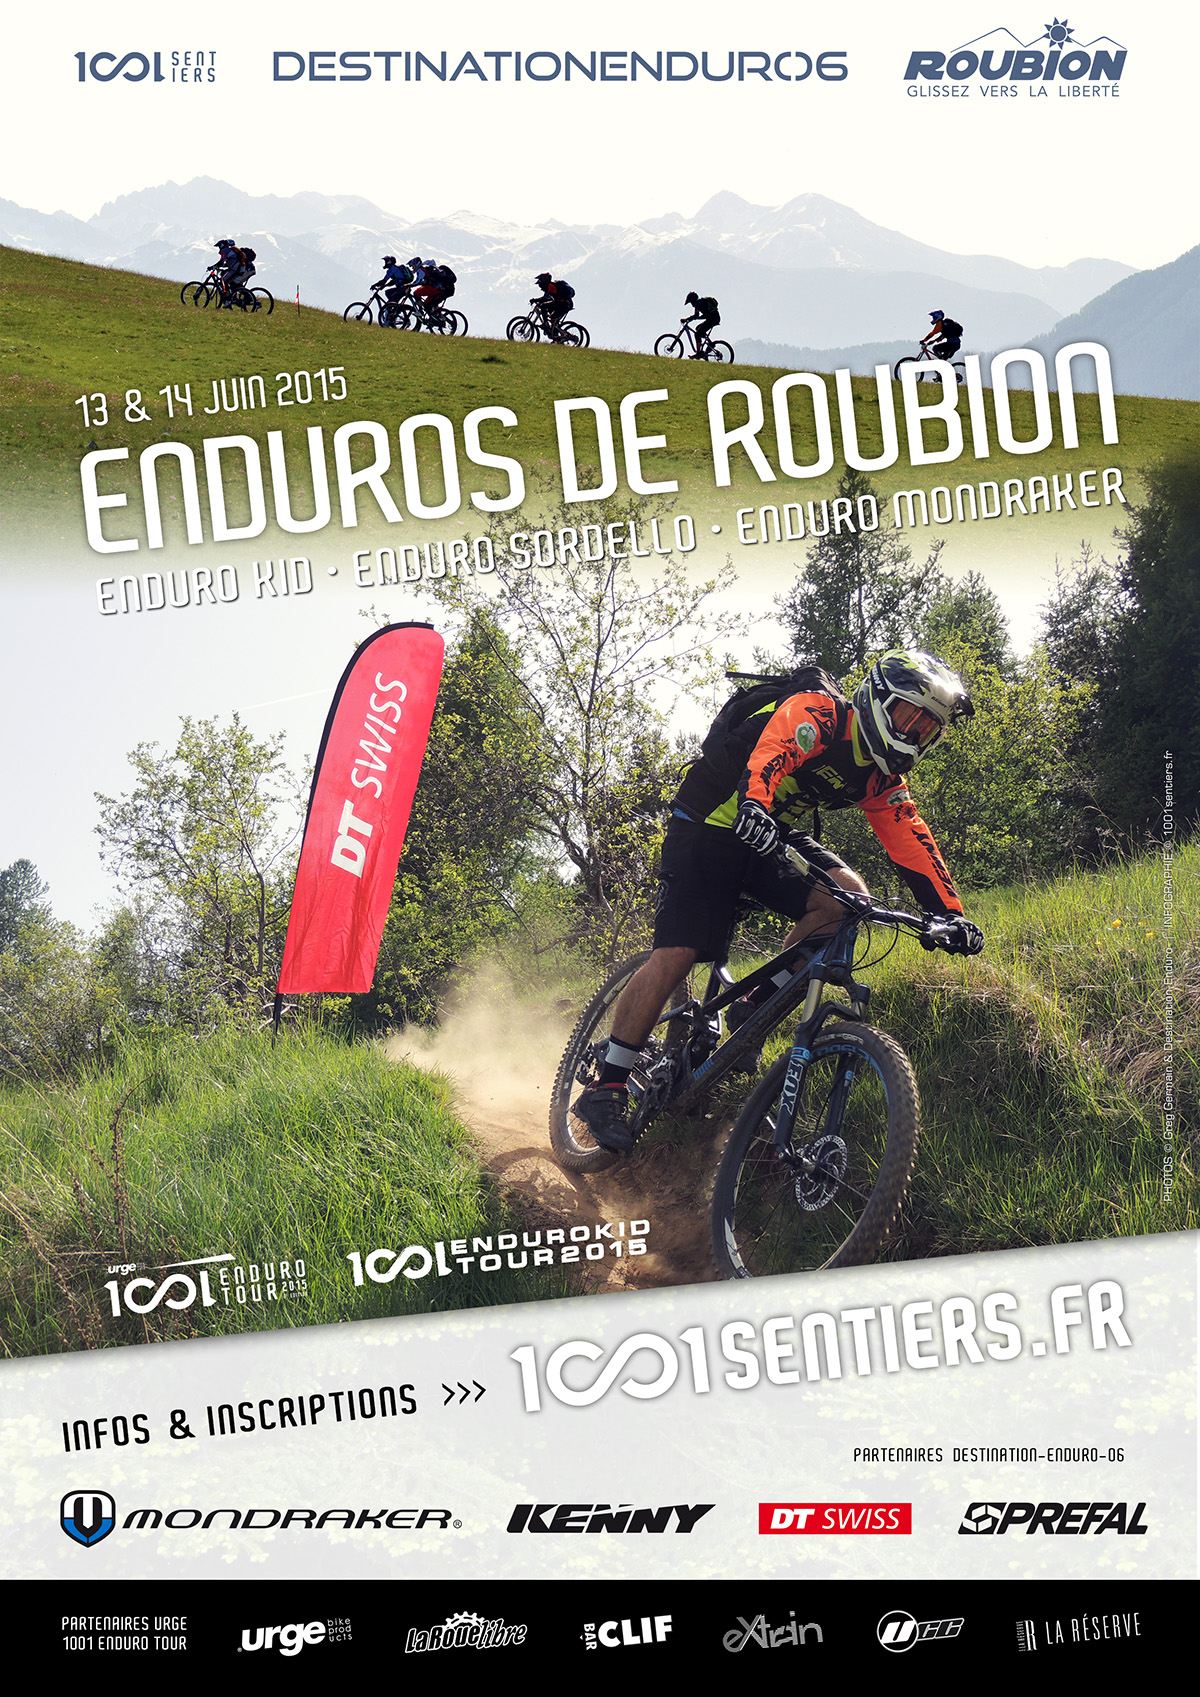 Enduros & Enduro kid de Roubion / Cloture imminente